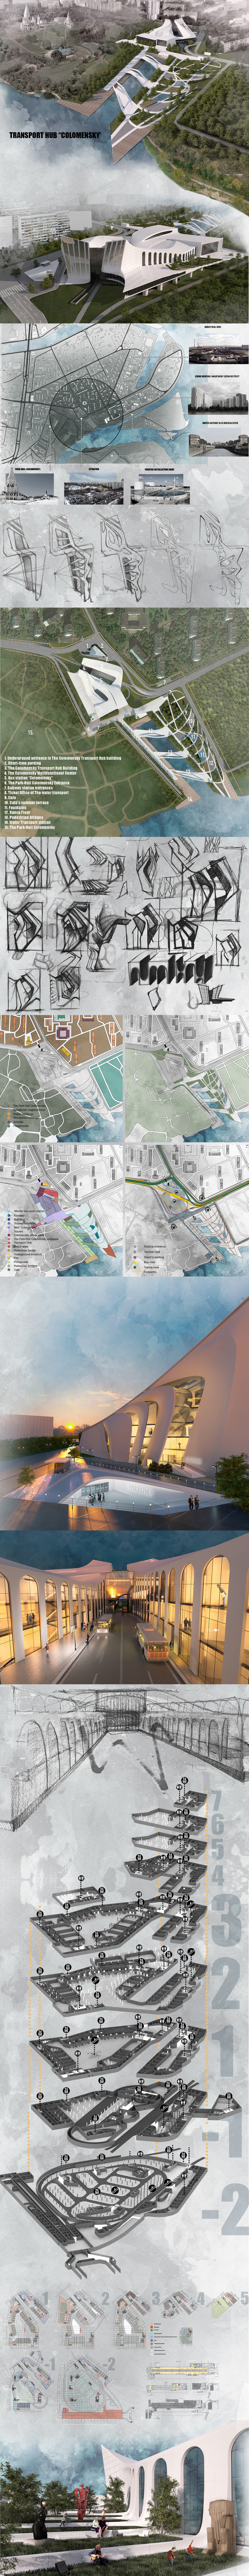 diploma architectural project transport hub Moscow architecture Architectural Presentation Landscape Design